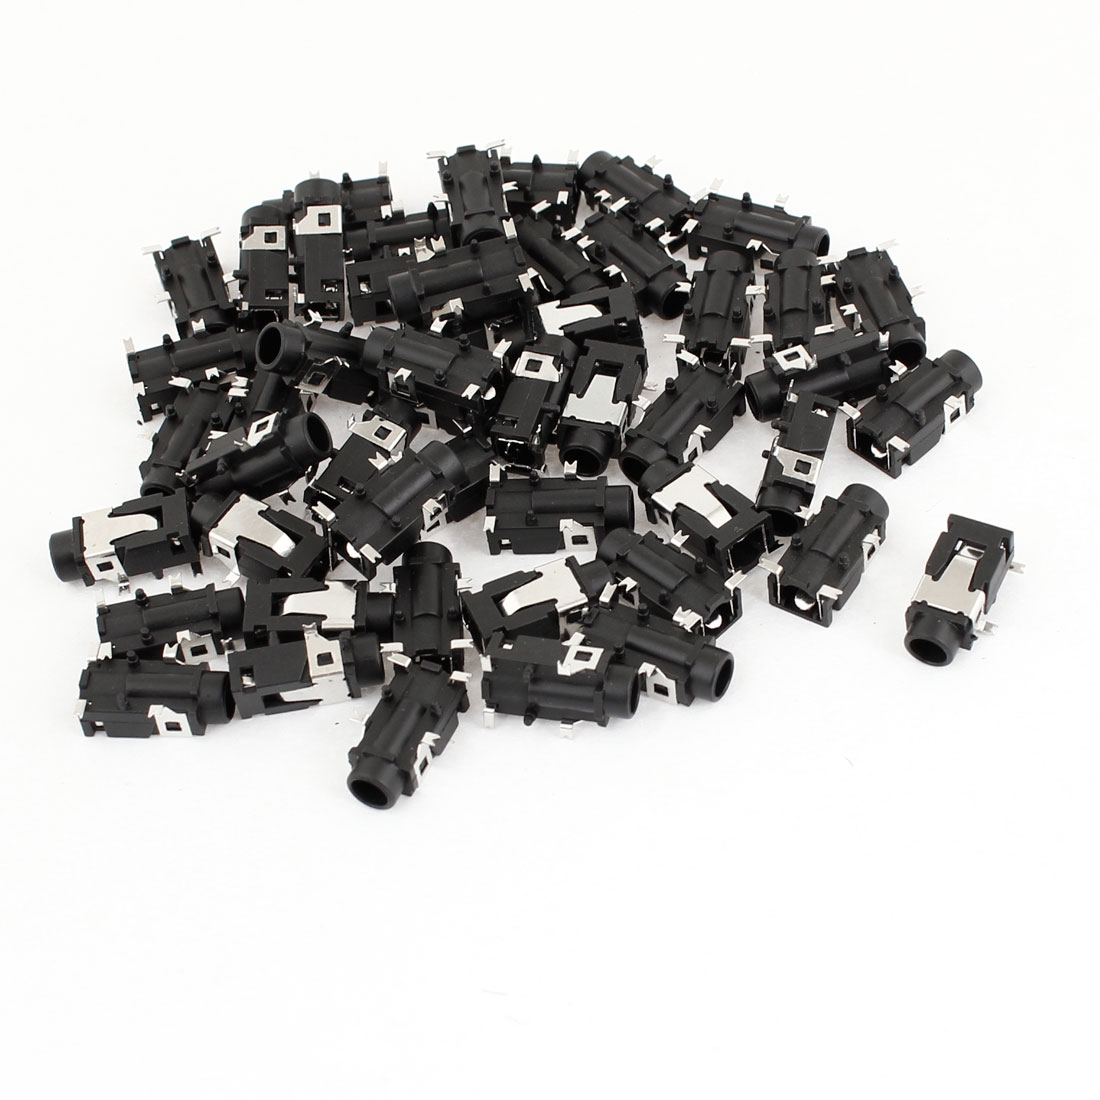 50 Pcs 4 Pin 3.5mm Headphone Stereo Jack PCB Panel Mount Connector